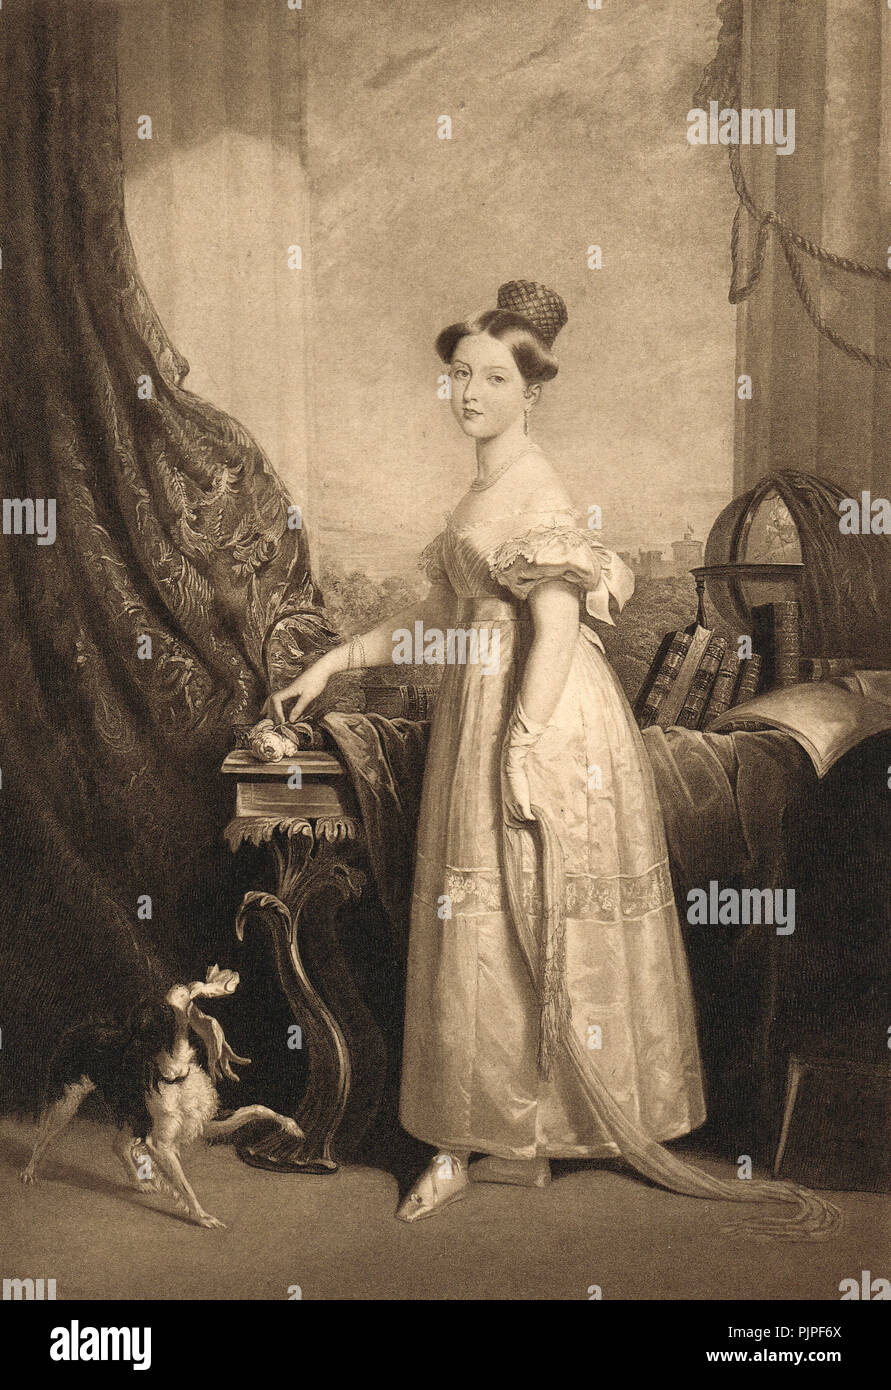 Princess later Queen Victoria, with her favourite dog Dash, circa 1832, aged 13 - Stock Image